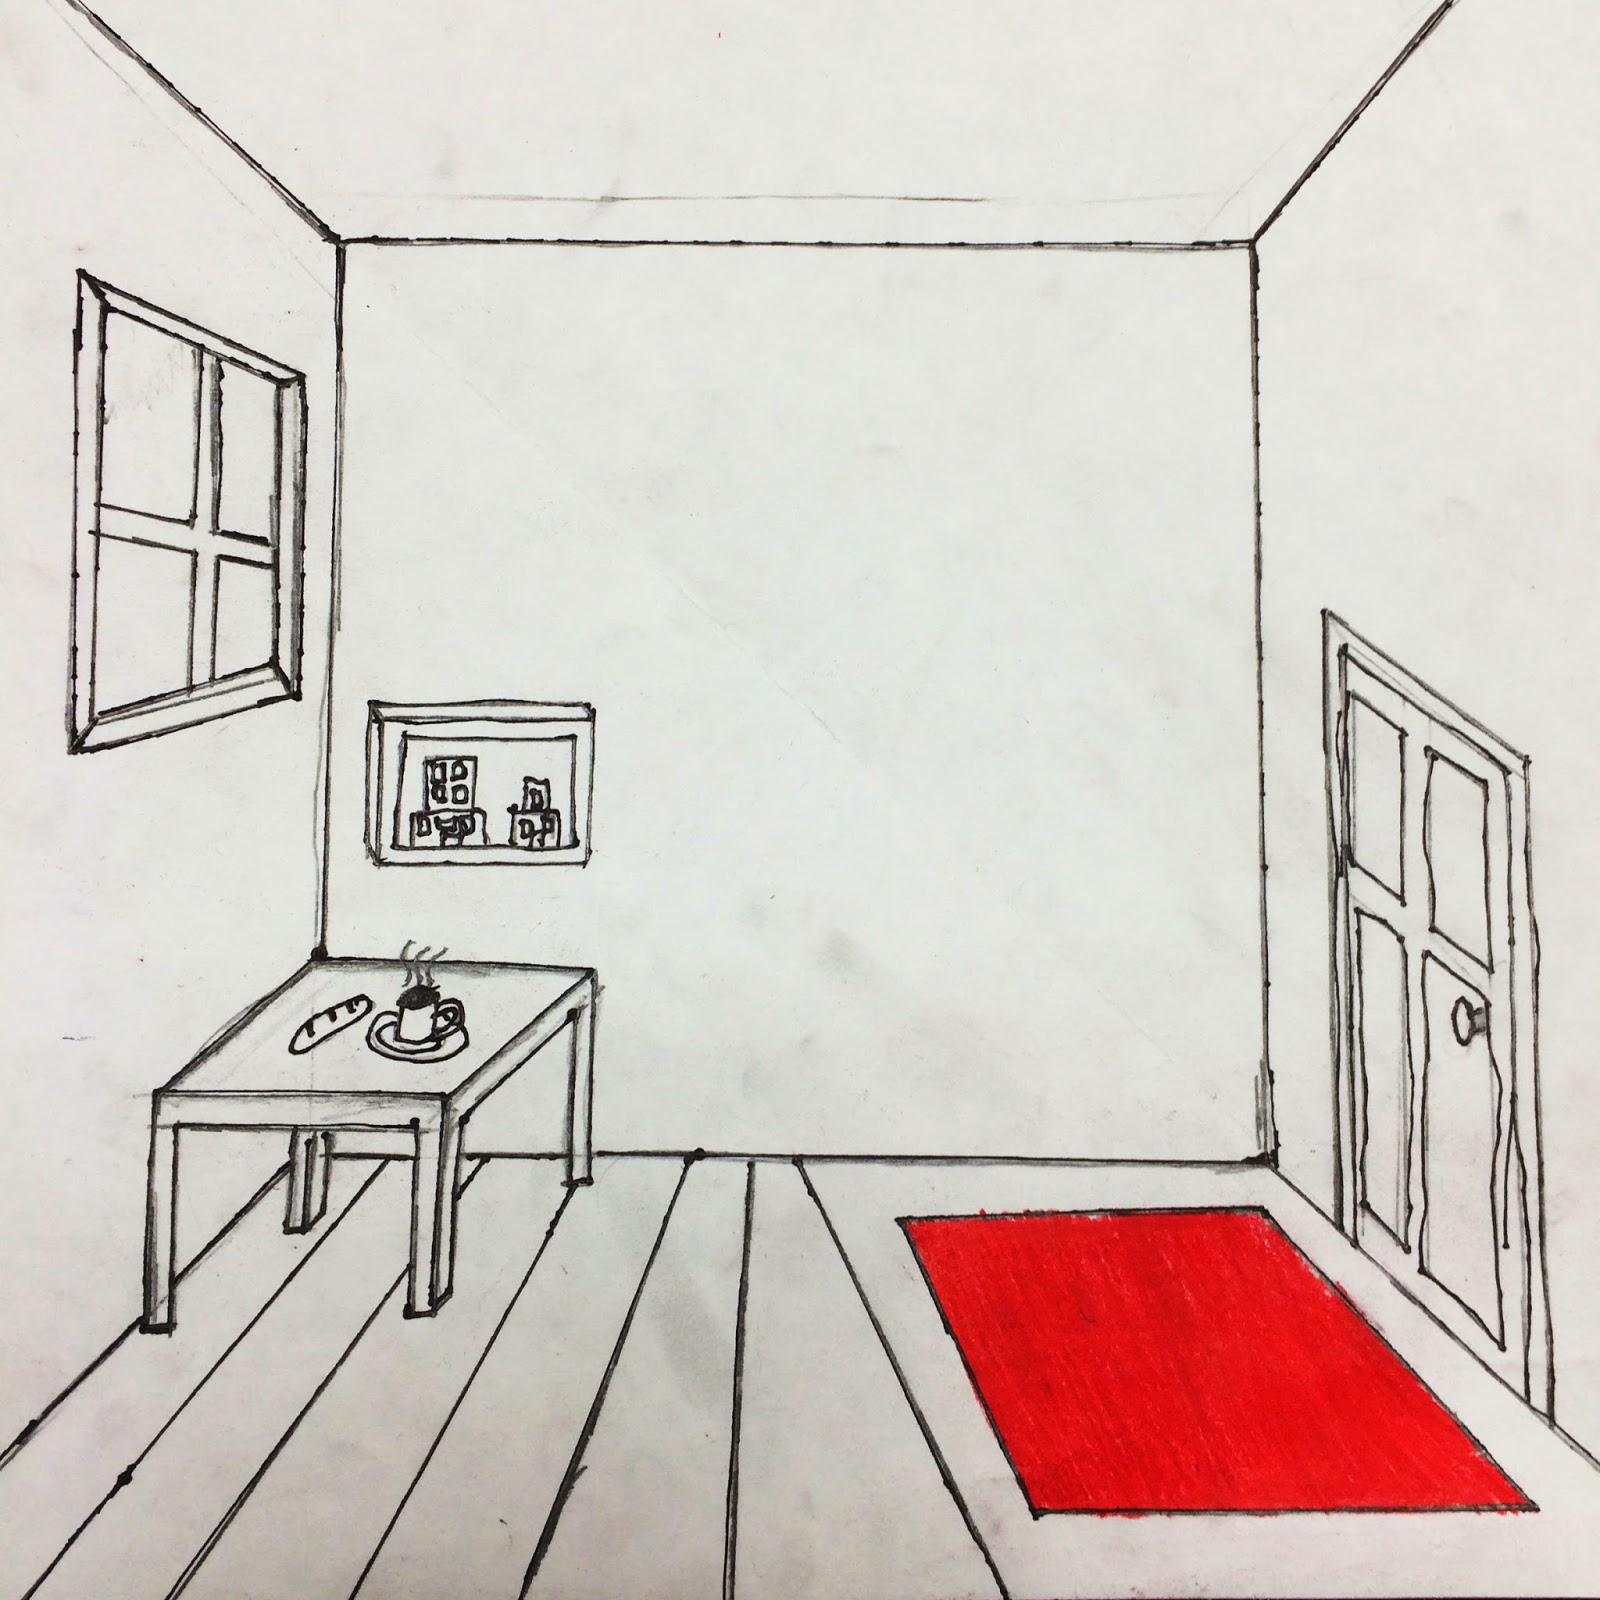 Drawn bedroom perspective In Room The Helpful Draw